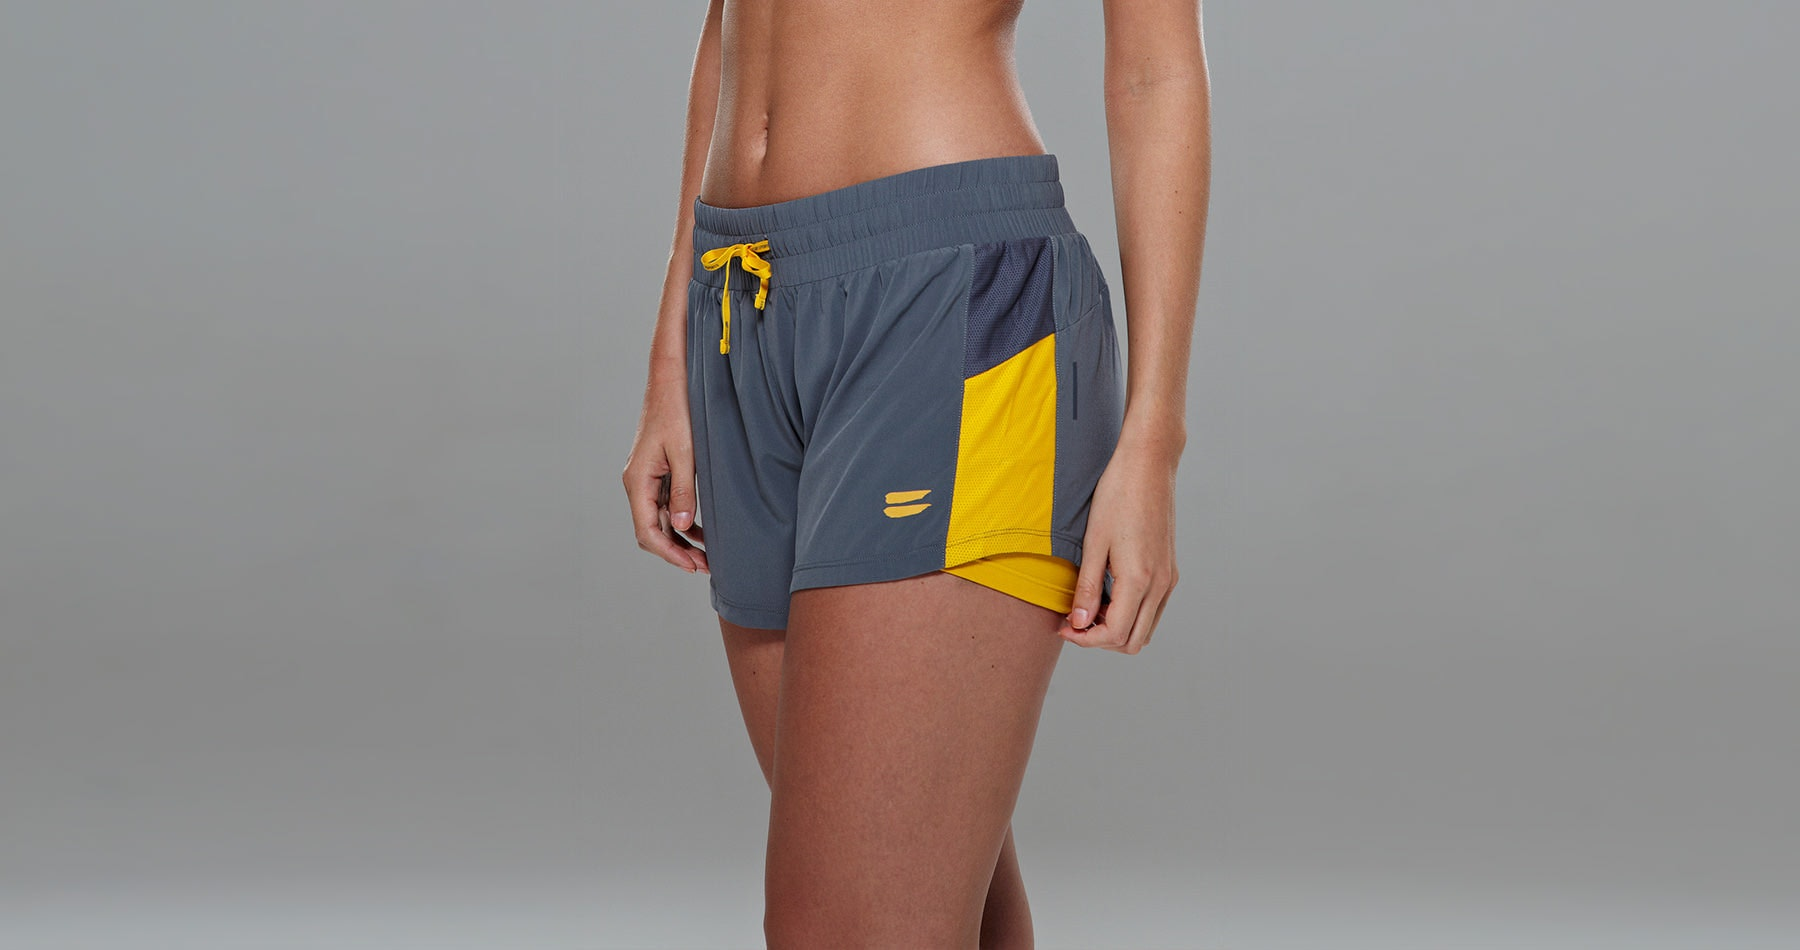 Tribesports Core Women's 2-in-1 Running Shorts Charcoal 5